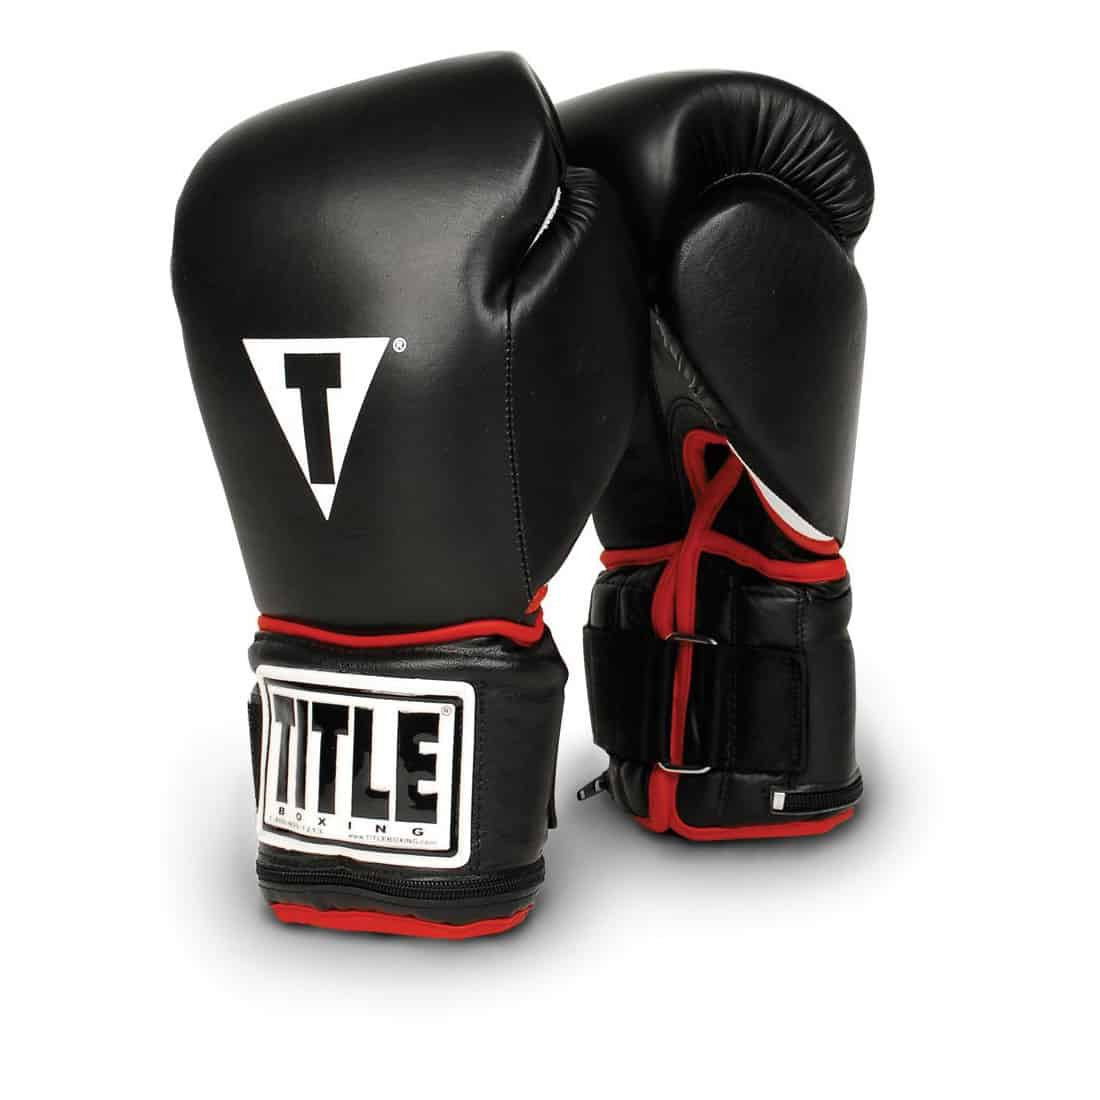 Le Boxing Weighted Super Bag Gloves 500